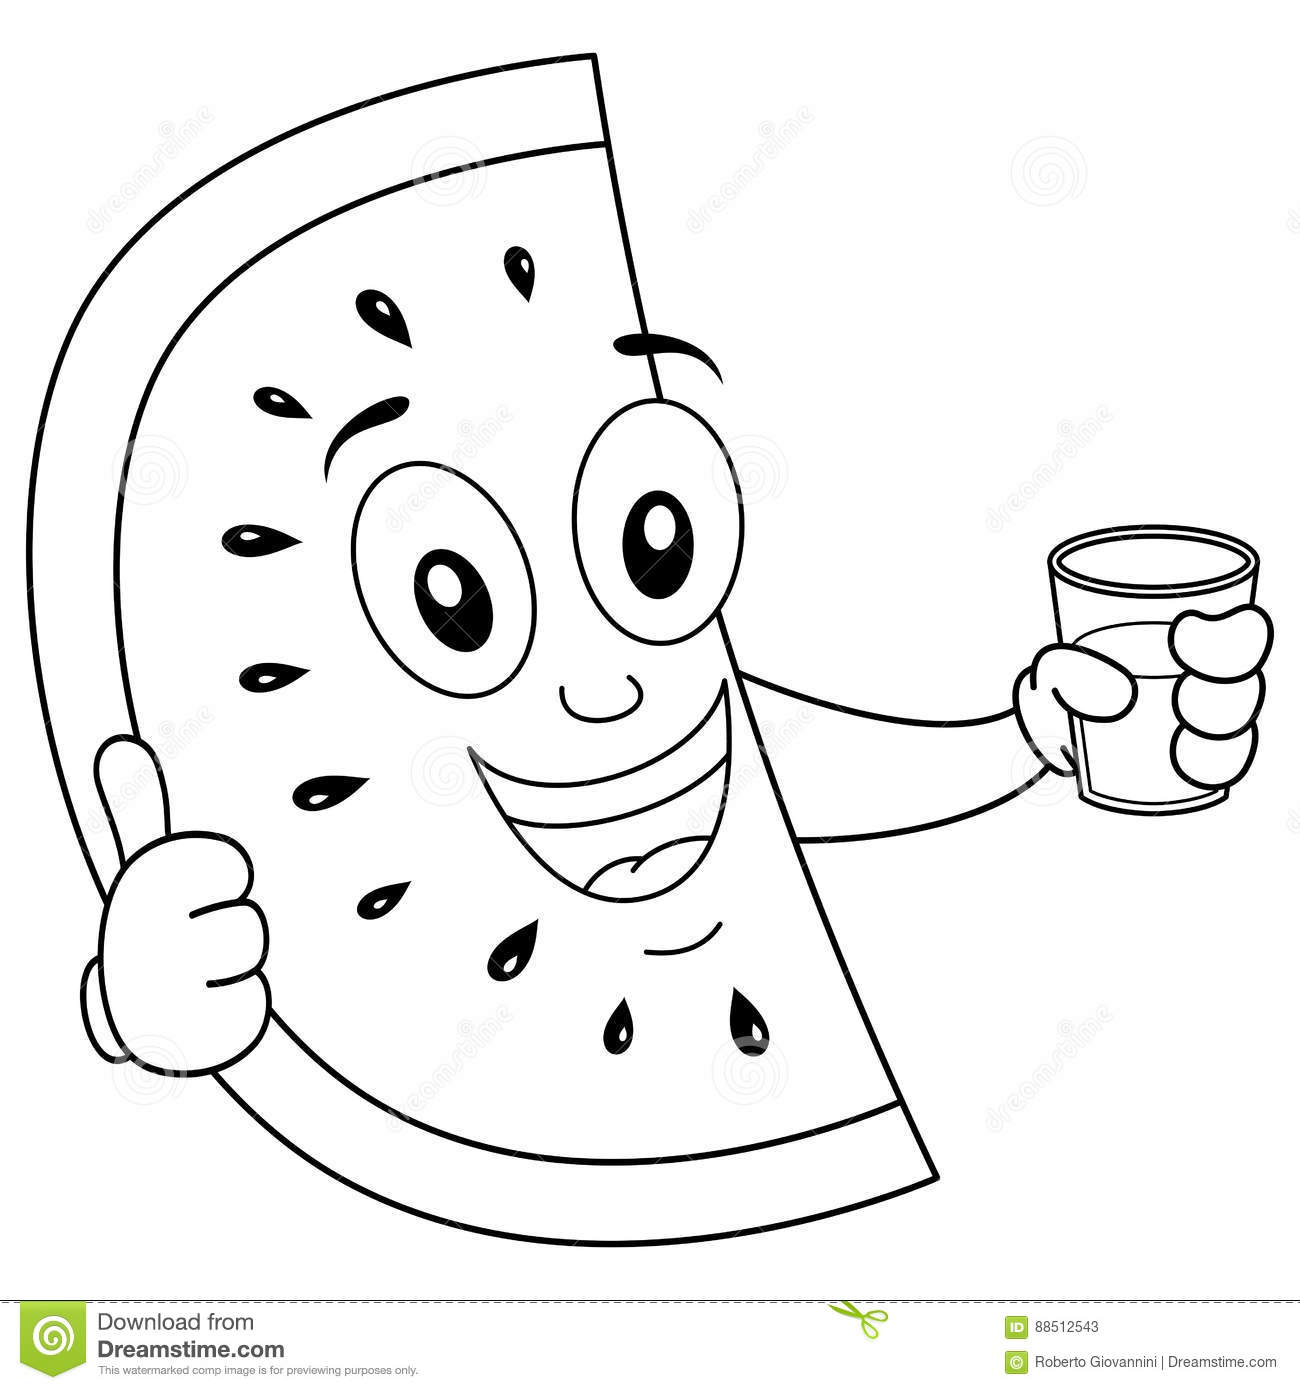 Colouring in juice - Royalty Free Vector Download Coloring Watermelon With Squeezed Juice